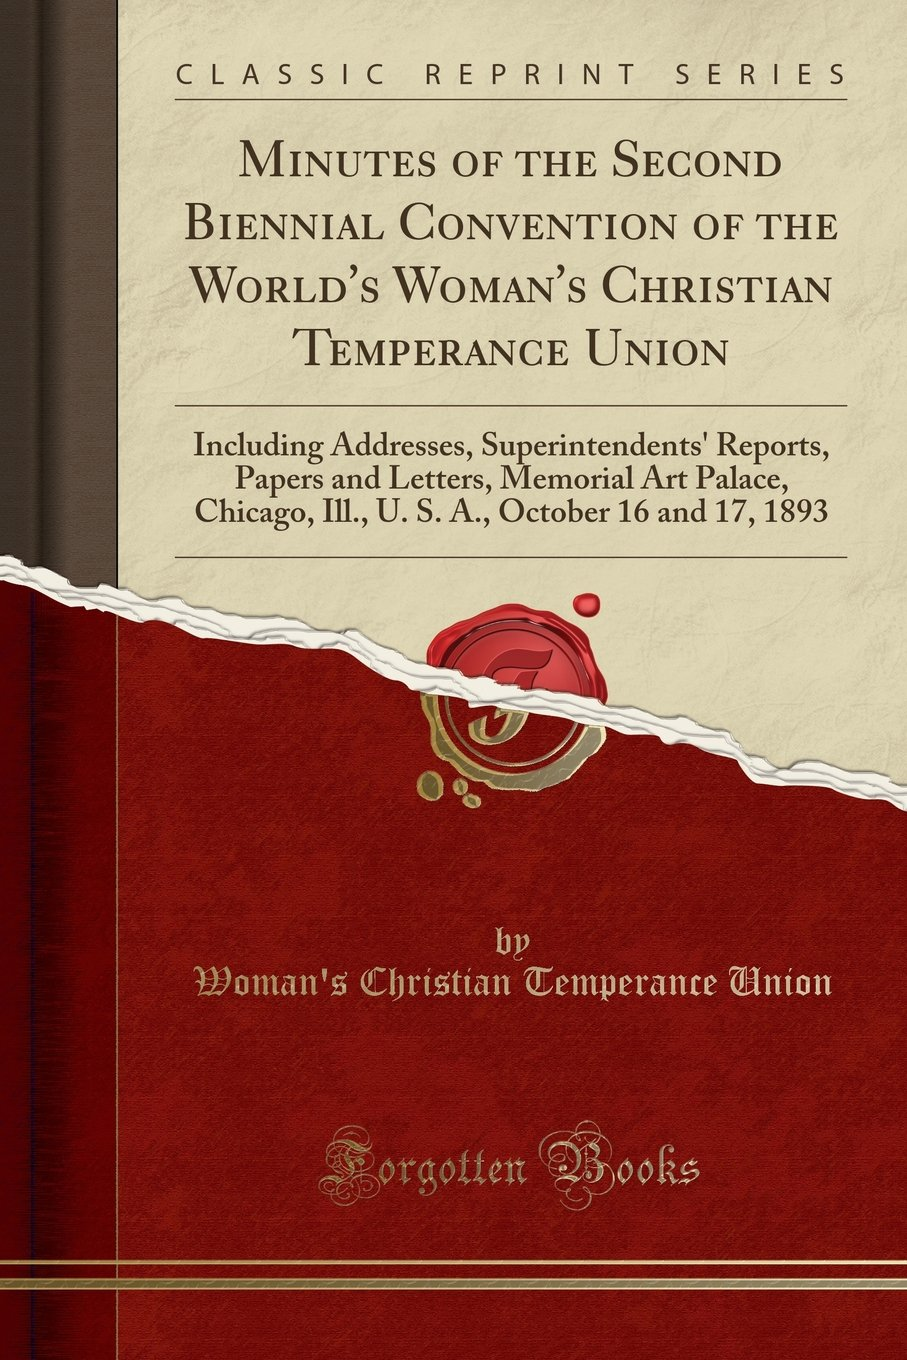 Download Minutes of the Second Biennial Convention of the World's Woman's Christian Temperance Union: Including Addresses, Superintendents' Reports, Papers and ... A., October 16 and 17, 1893 (Classic Reprint) pdf epub